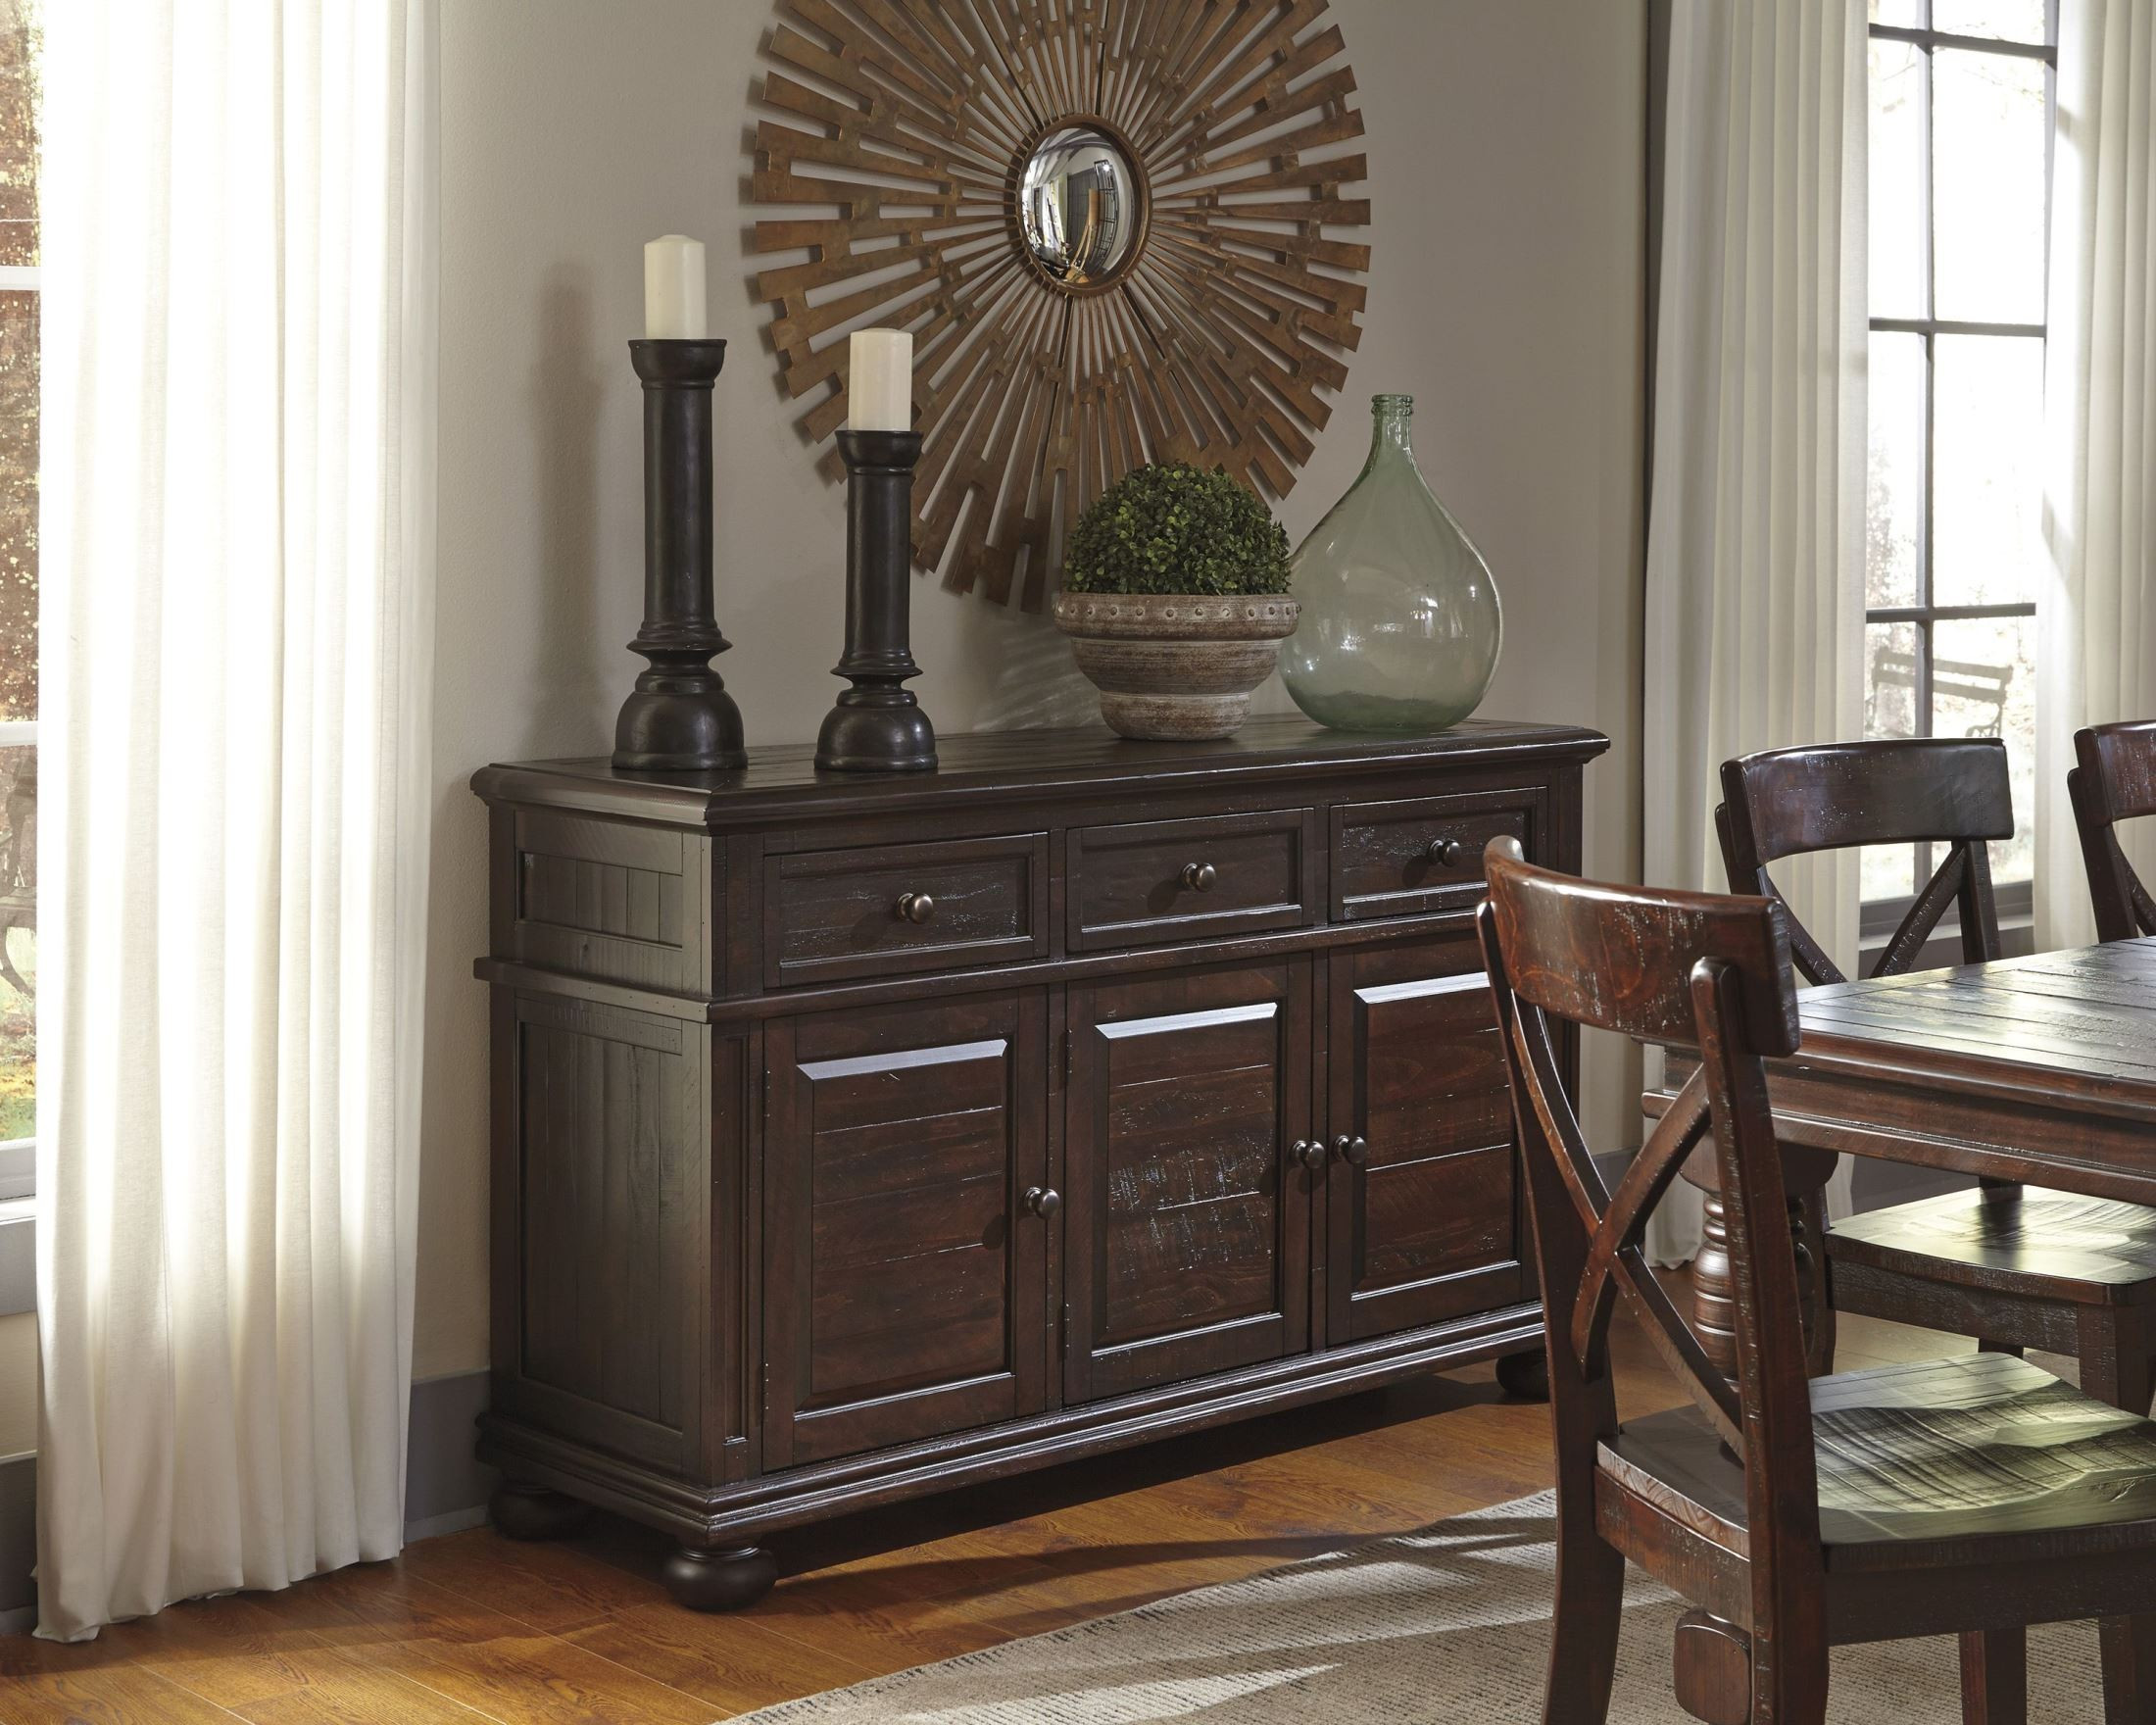 Best ideas about Dining Room Server . Save or Pin Gerlane Dark Brown Dining Room Server from Ashley D657 60 Now.